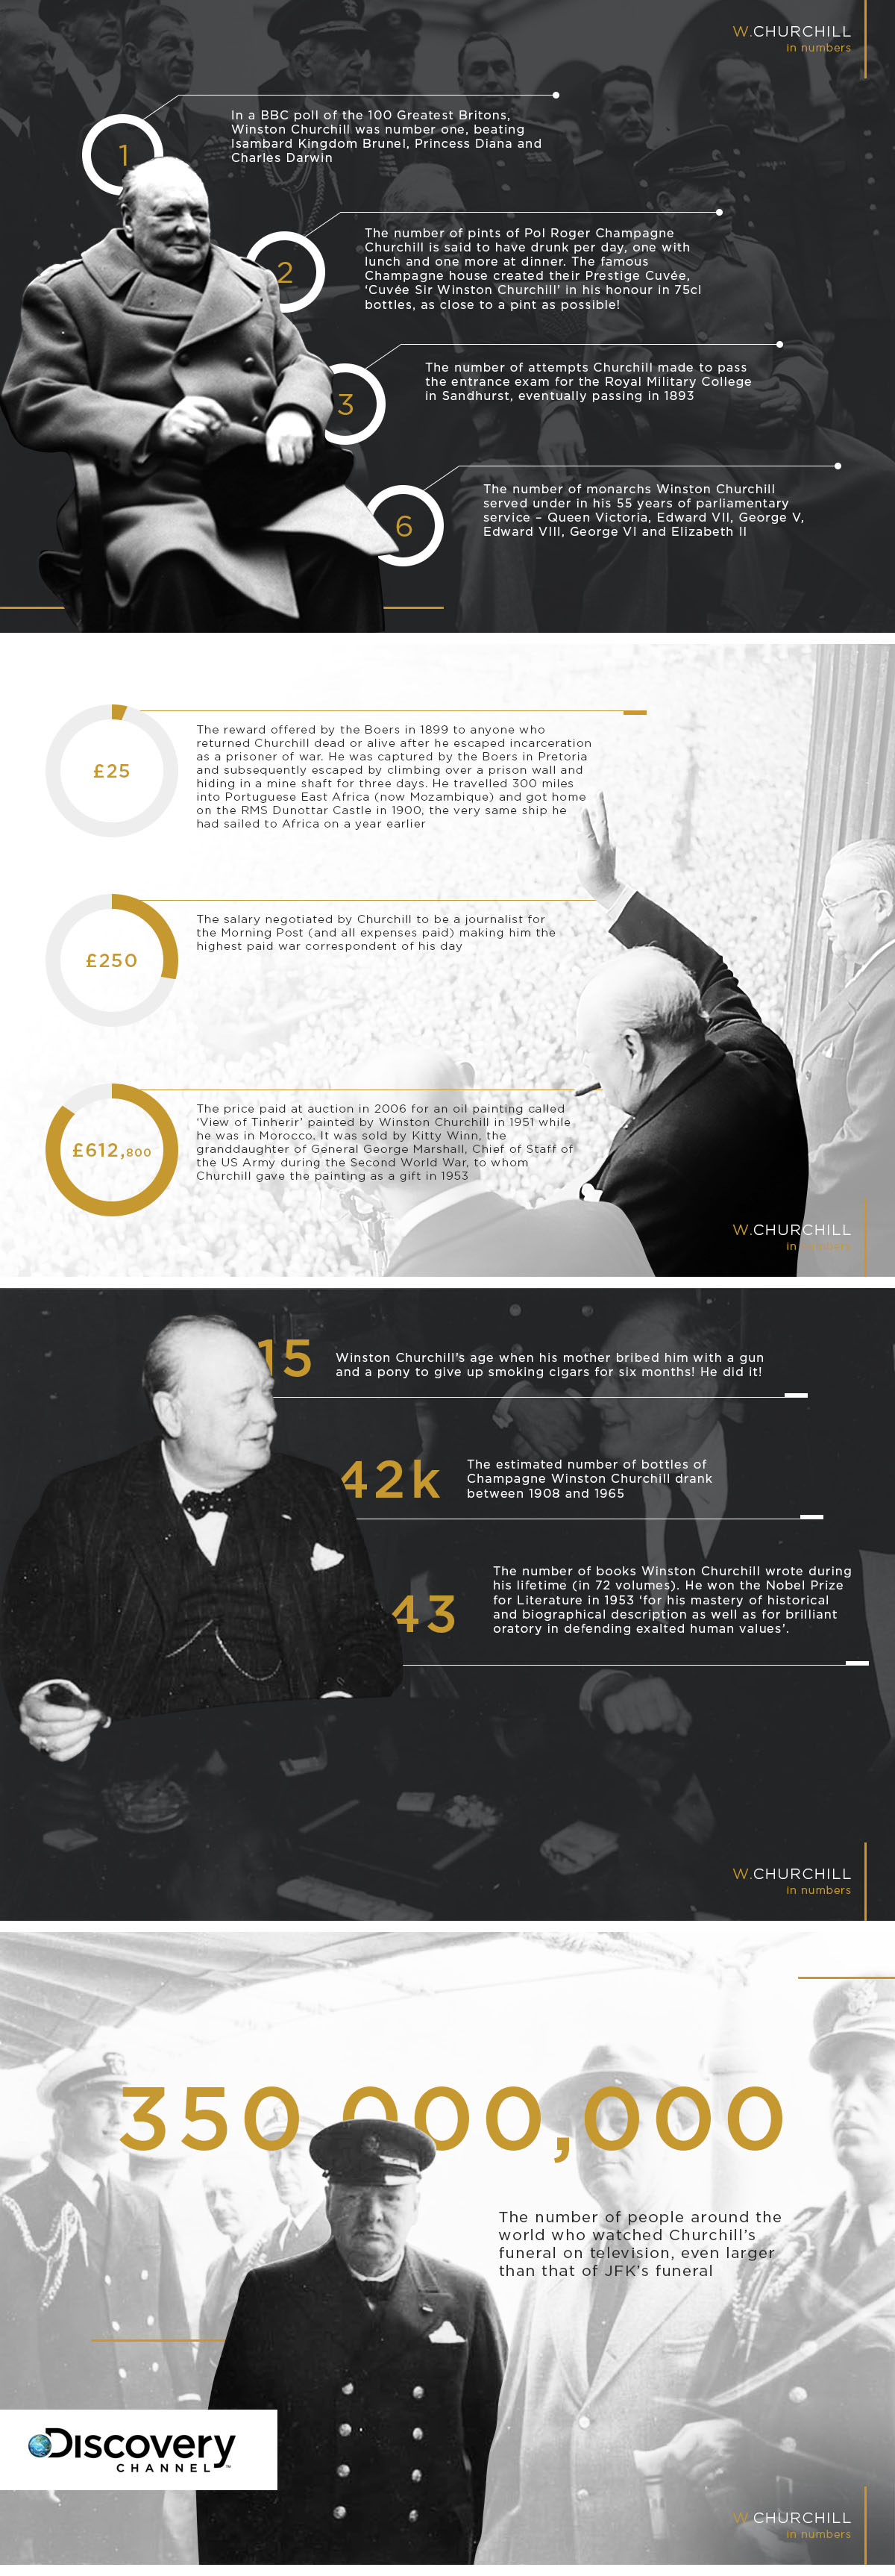 Churchill in numbers